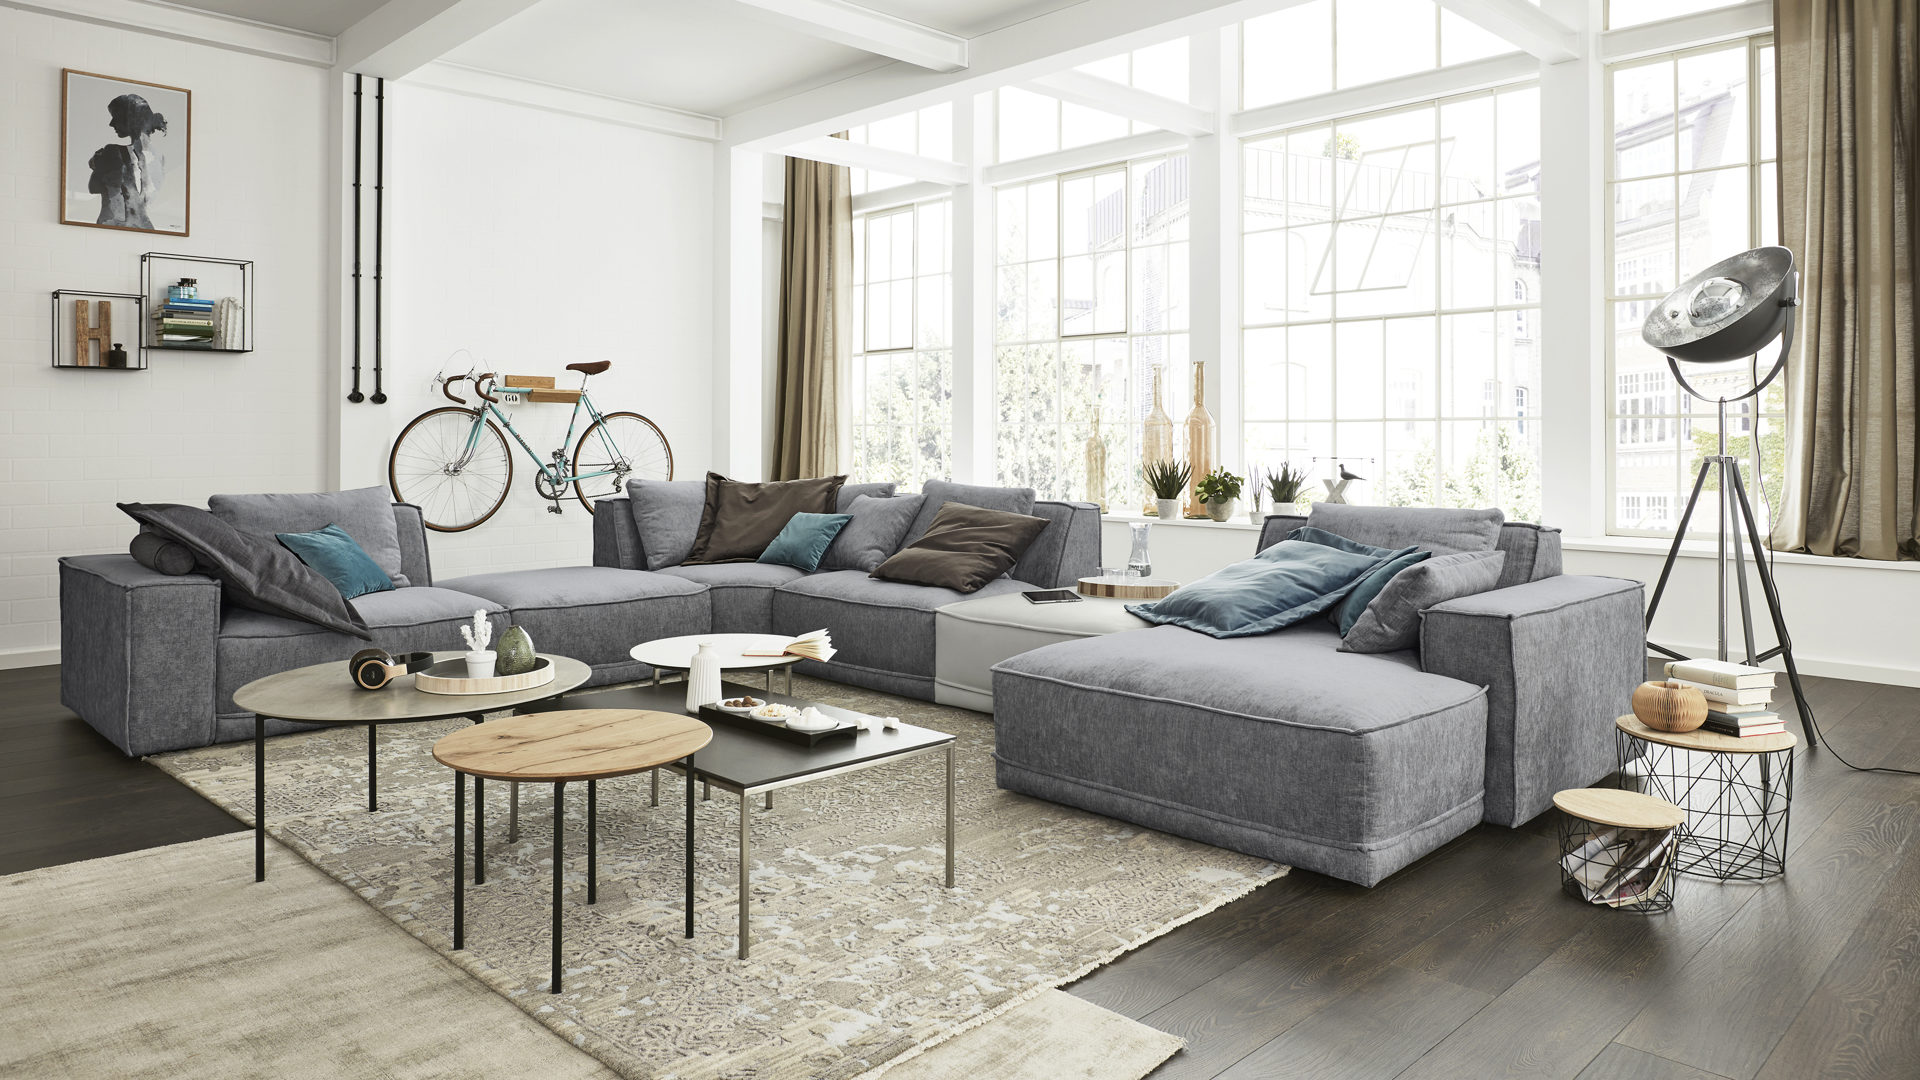 Candy Couchgarnitur Interliving Sofa Serie 4100 Wohnlandschaft Jeansfarbener